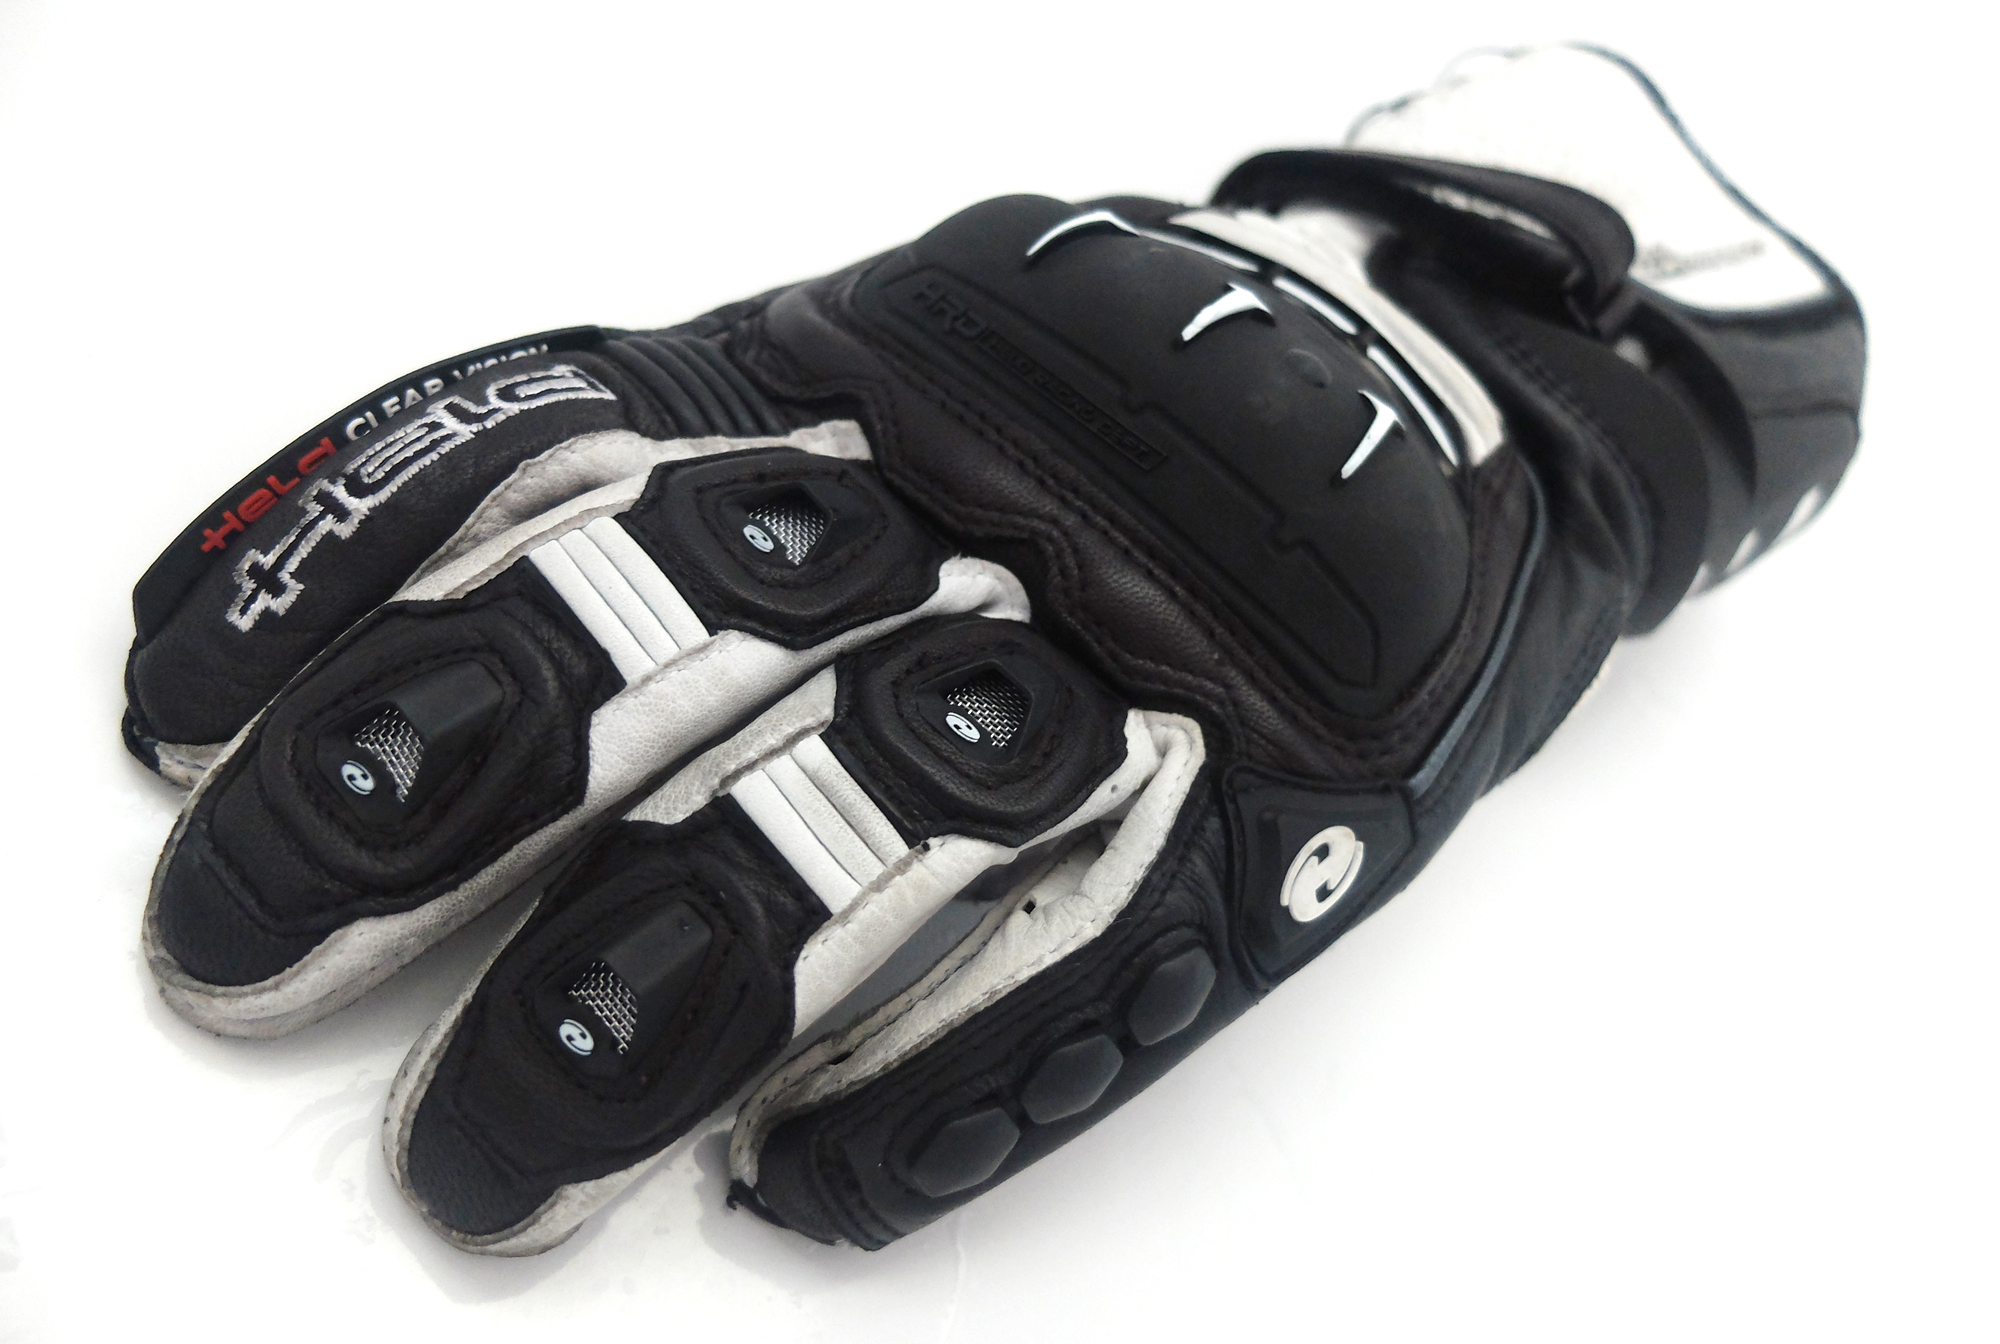 Learn to ride with Visordown: The right gloves